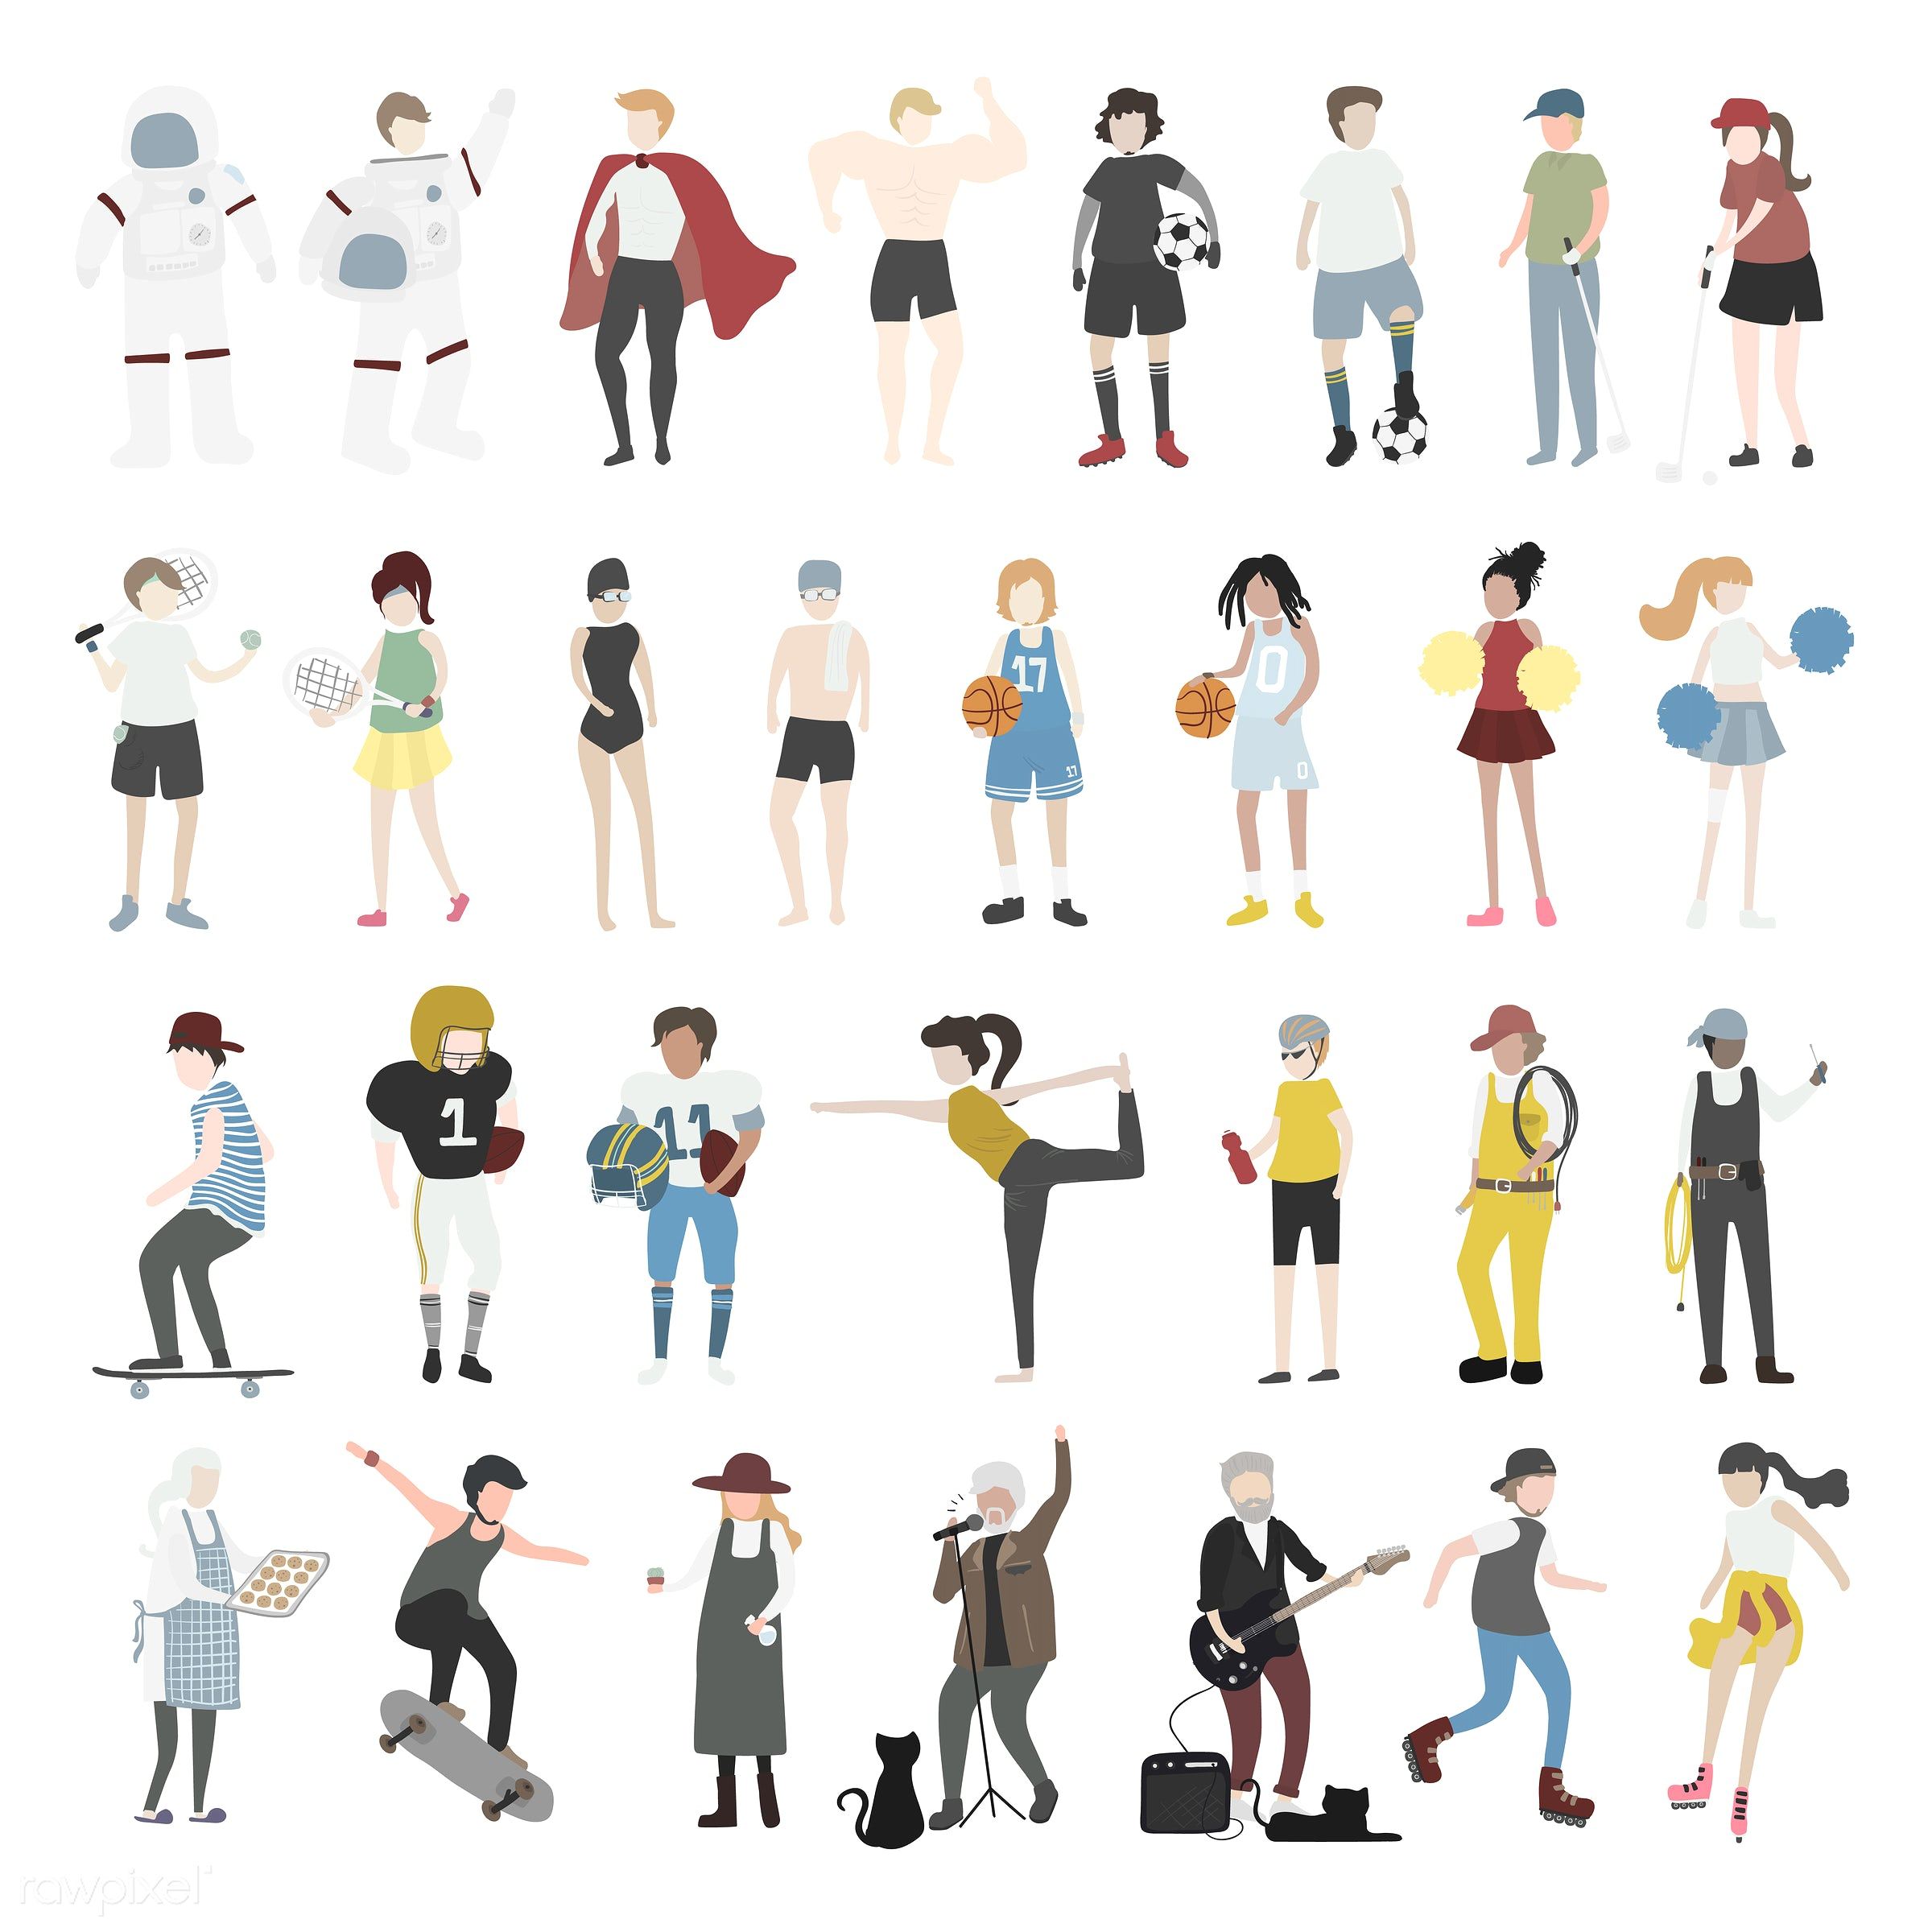 Vector set of illustrated people - career, cartoon, character, collection, community, diversity, graphic, illustration,...